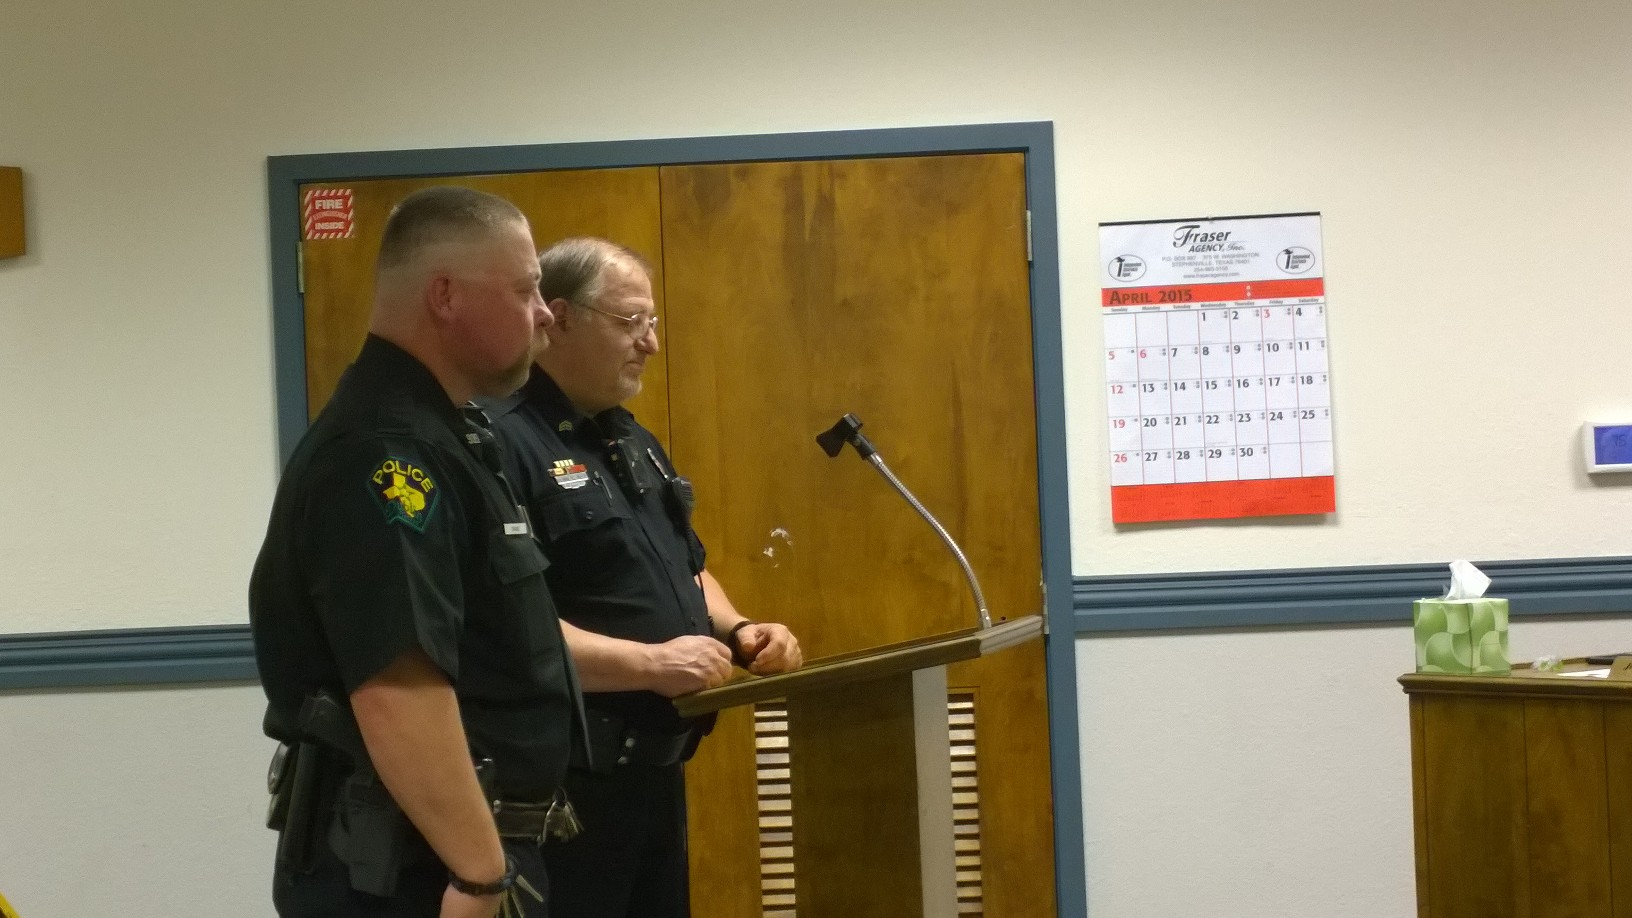 Sgt. Bennie Noel introduces a new officer during Monday night's meeting. Noel has served as interim for several months, however, the council has decided to offer the job to an outside applicant. || JESSIE HORTON photo